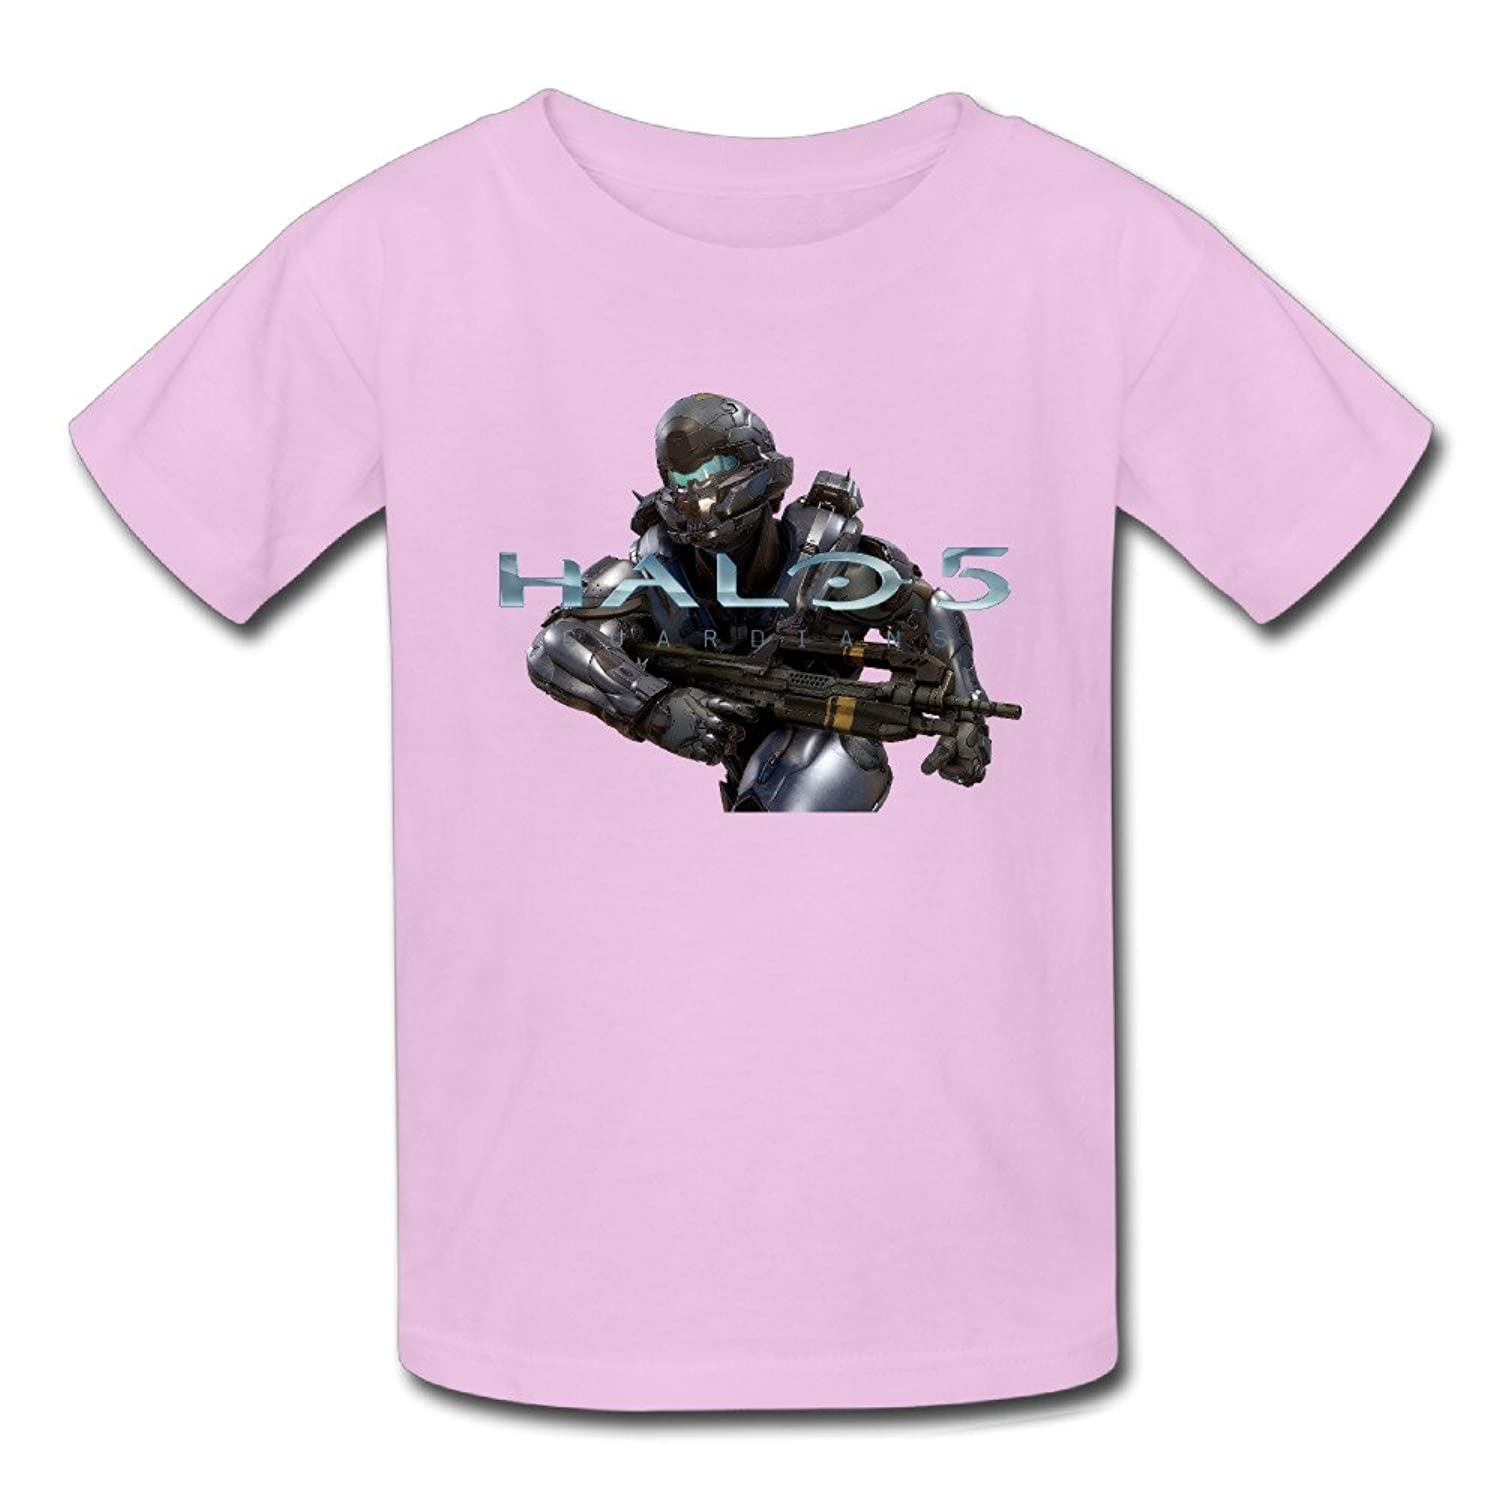 Halo 5 Guardians Game Logo Youth Quotes Slim Fit Short Sleeve T-Shirt